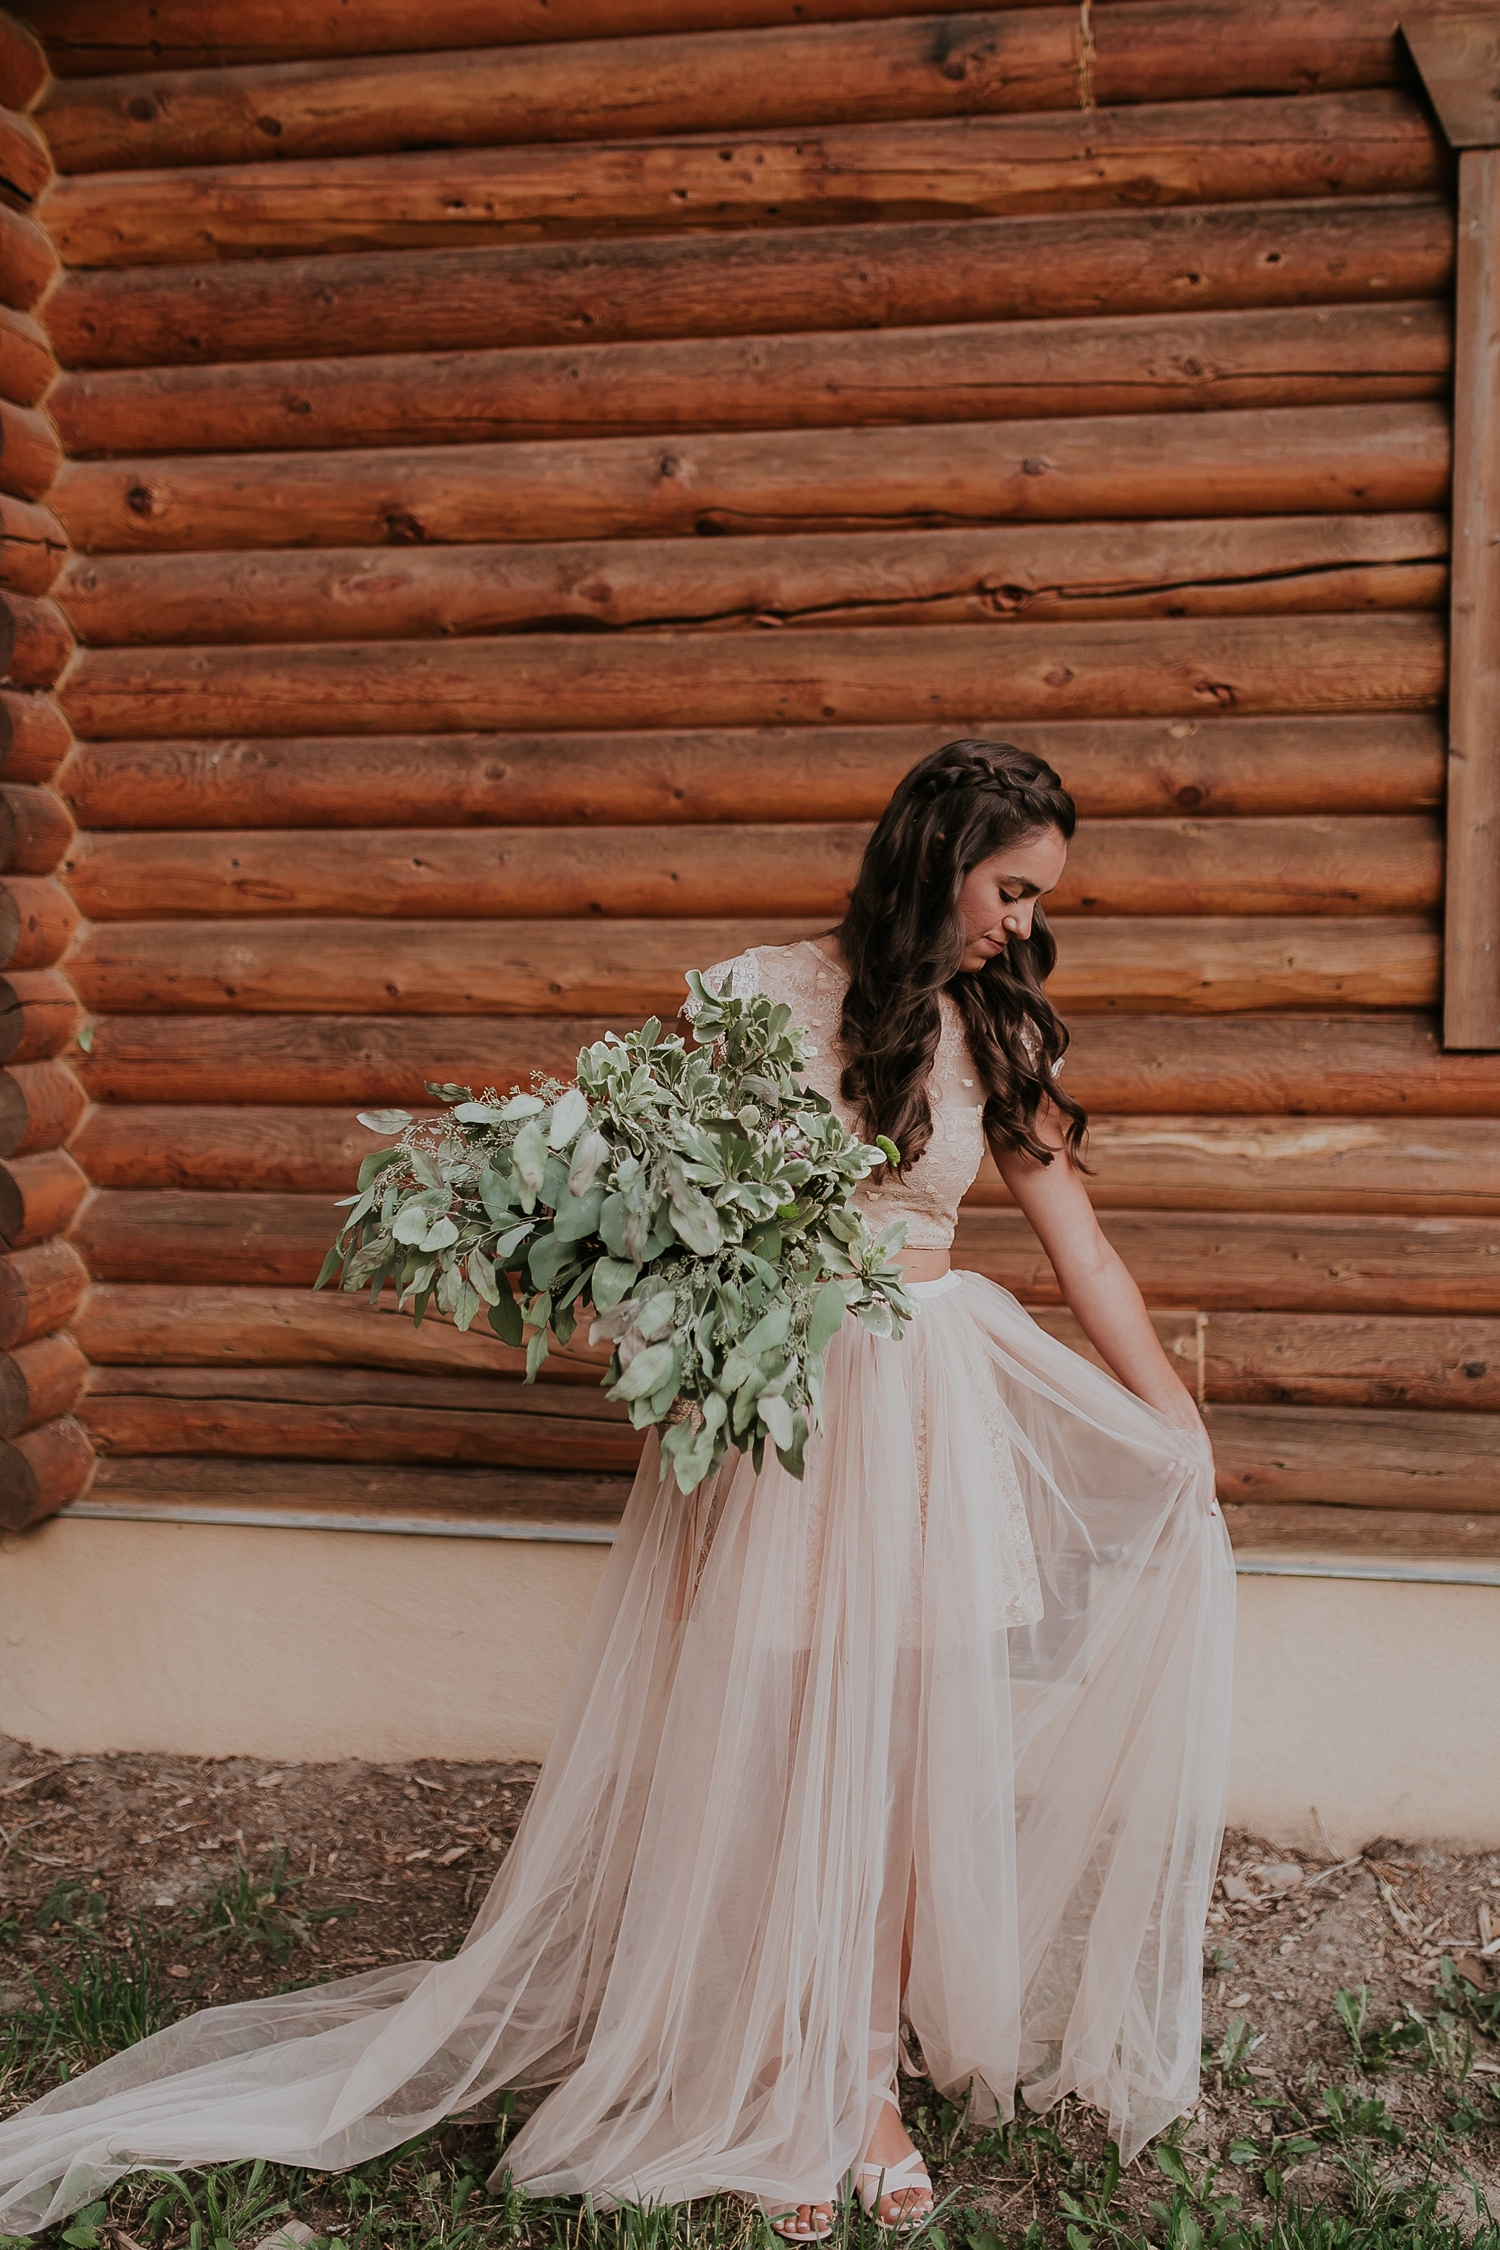 Alicia+lucia+photography+-+albuquerque+wedding+photographer+-+santa+fe+wedding+photography+-+new+mexico+wedding+photographer+-+summer+wedding+gowns+-+summer+wedding+style_0015.jpg